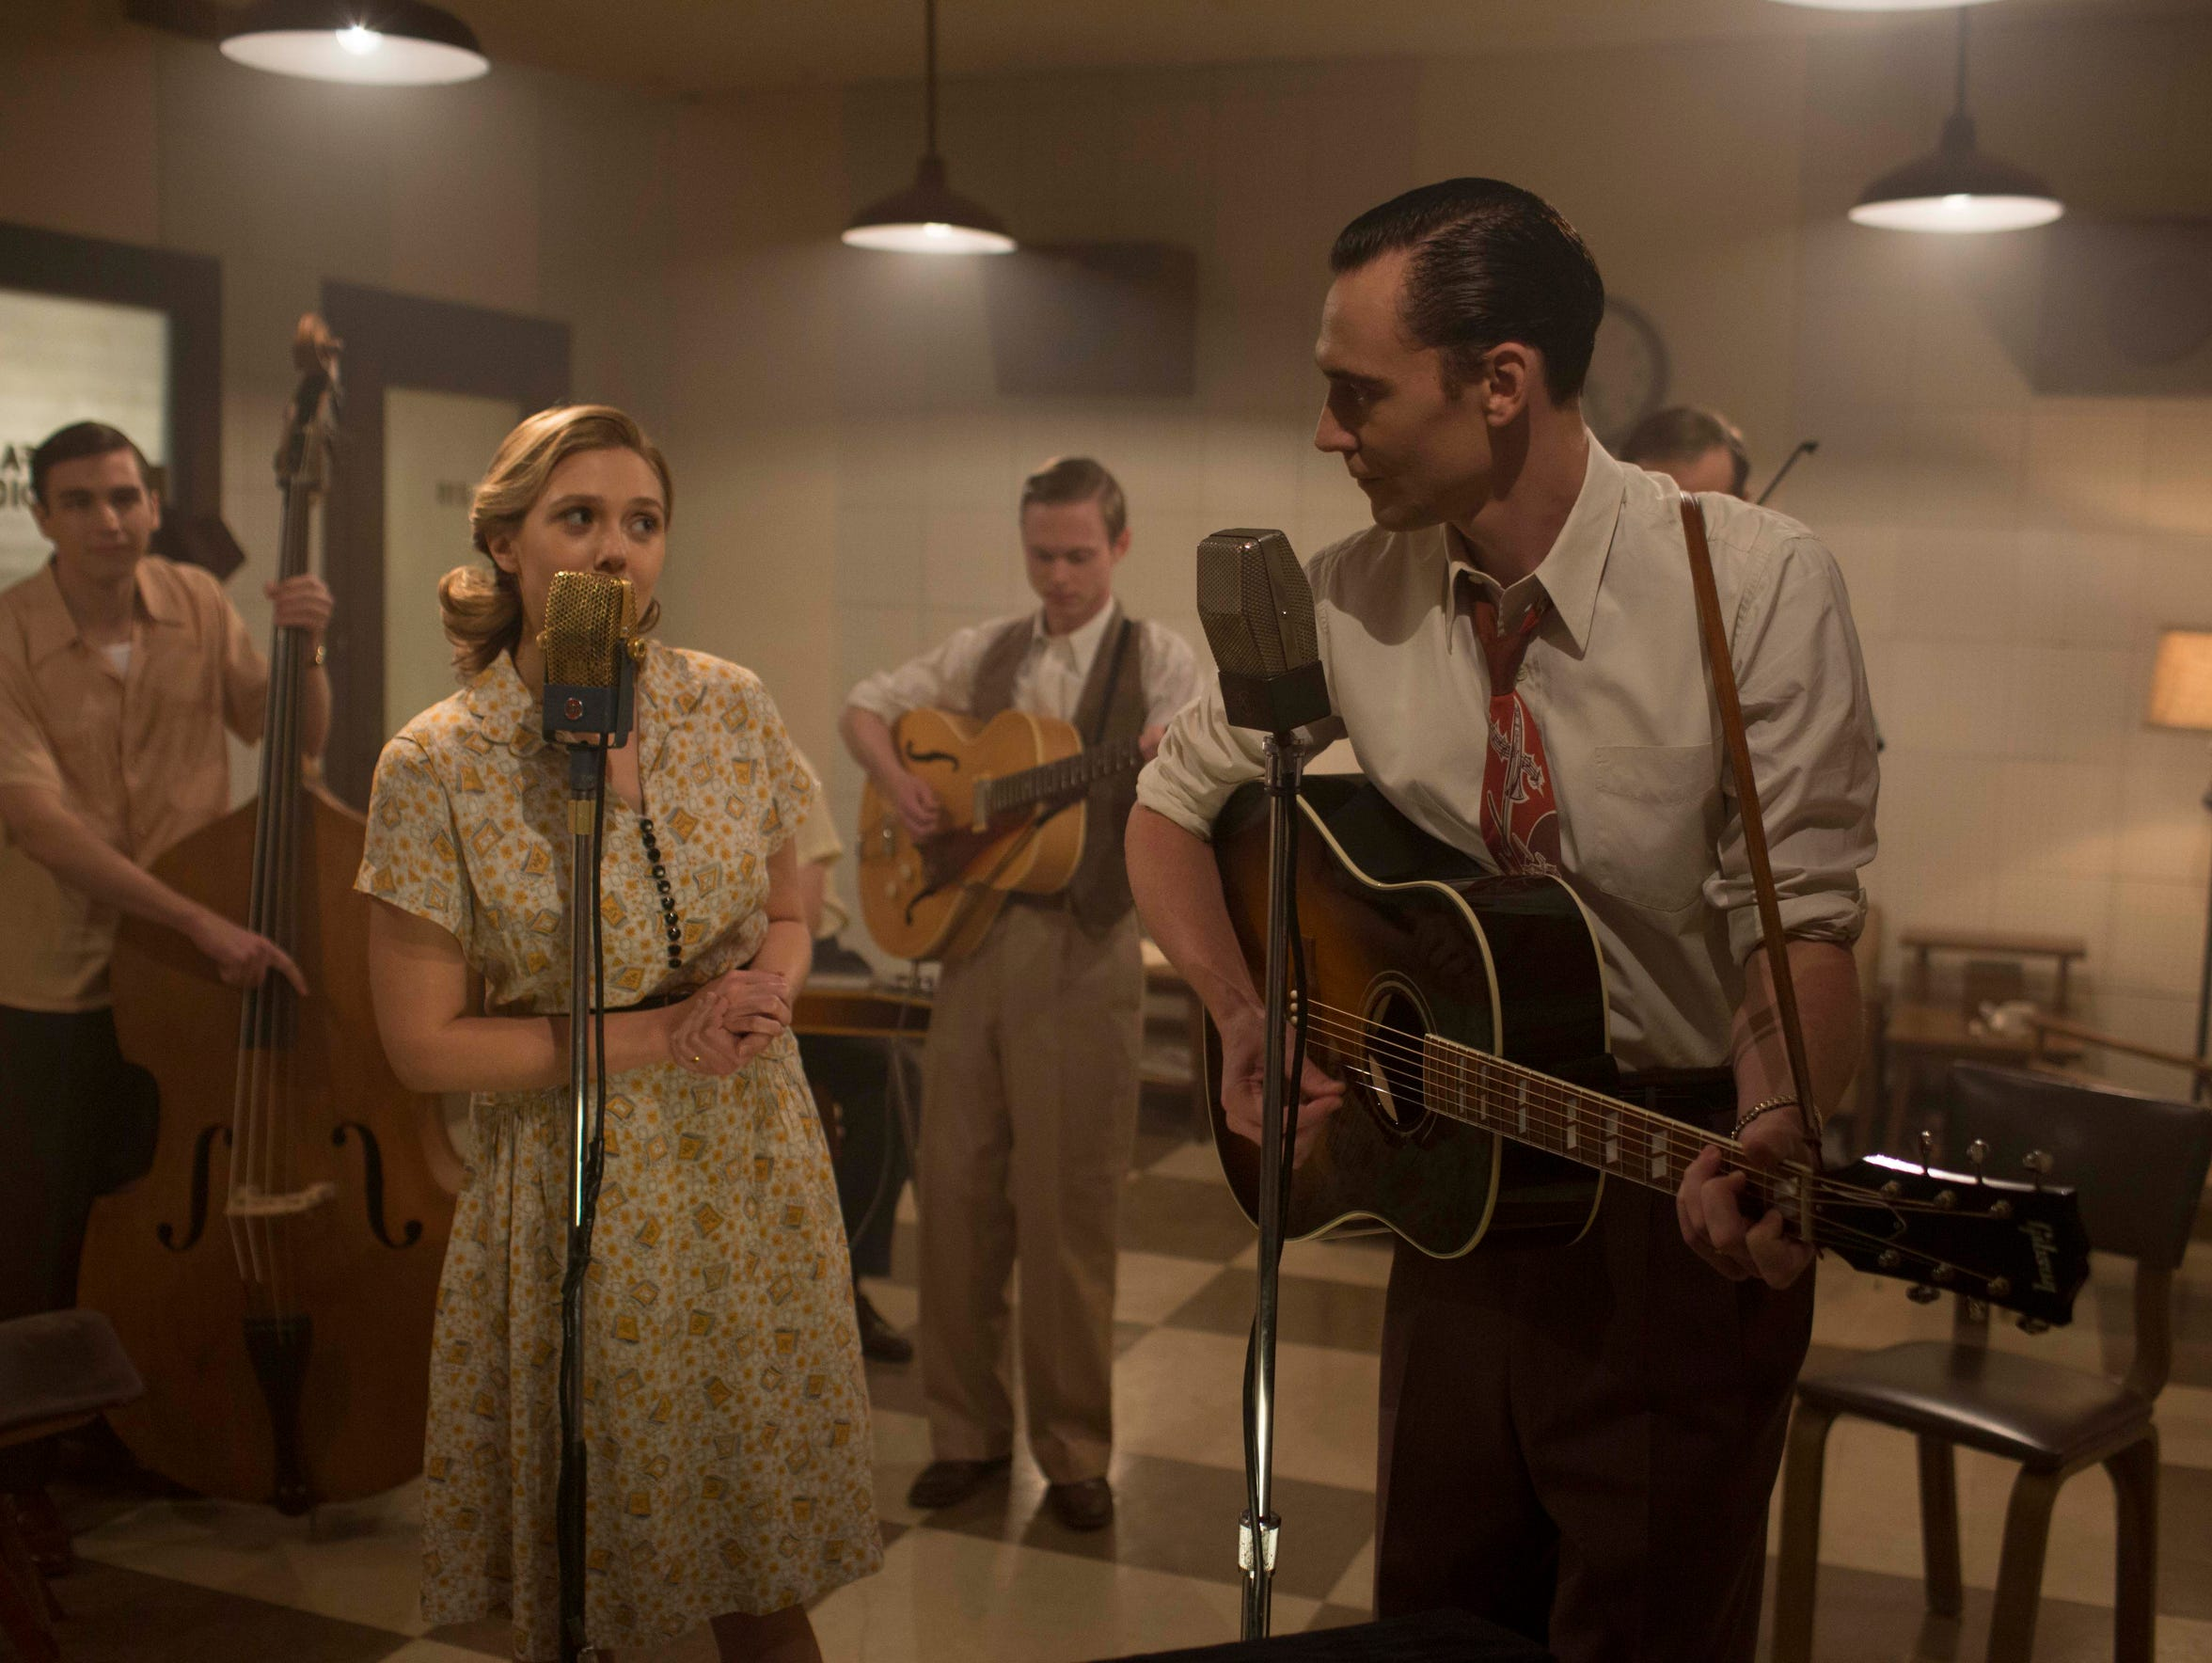 Left to right: Elizabeth Olsen as Audrey Williams and